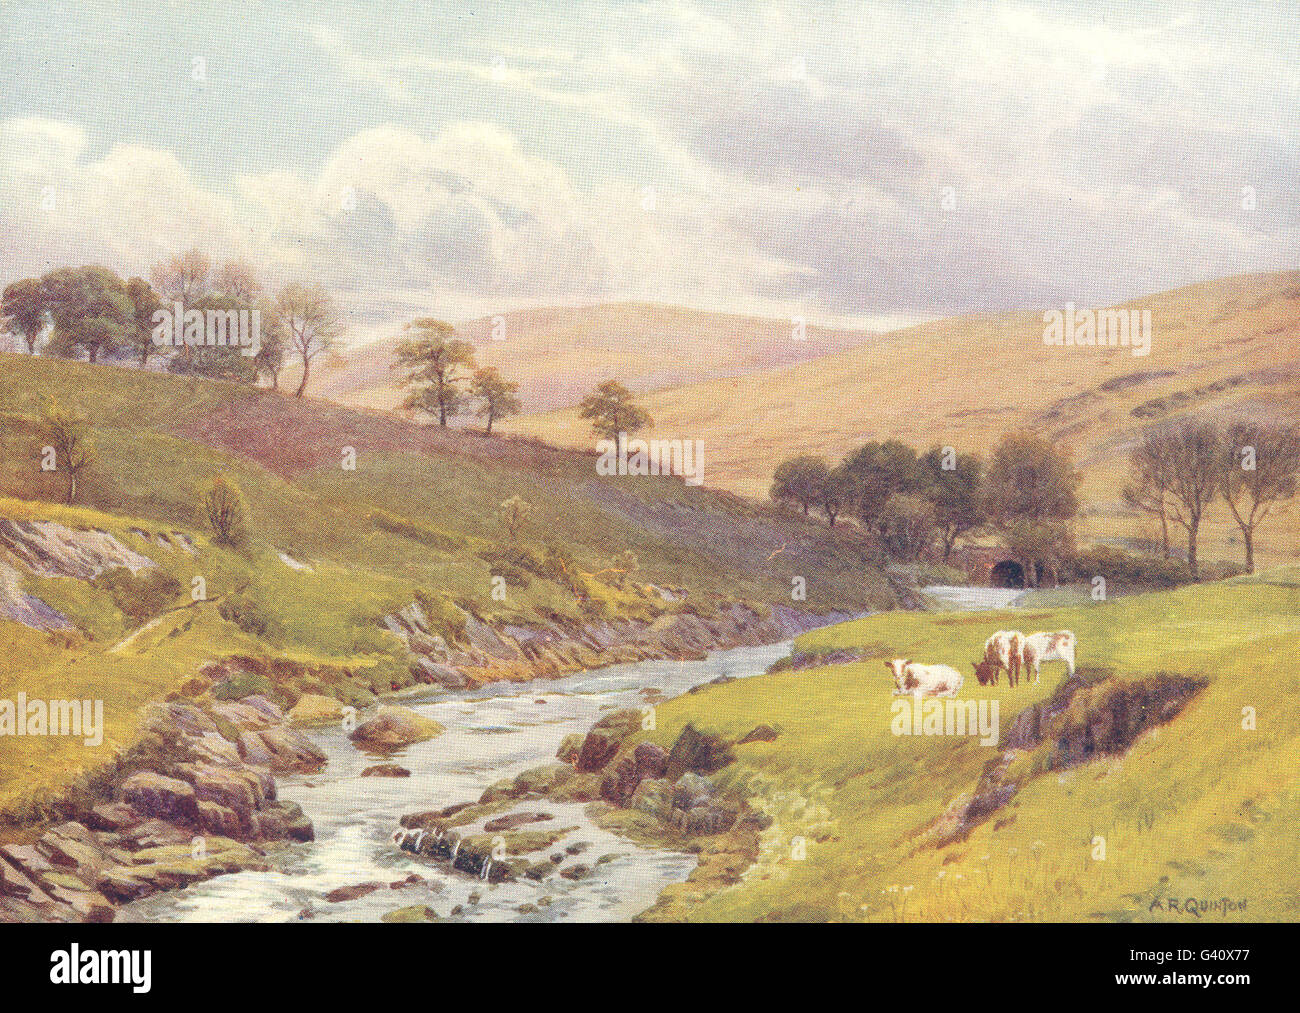 WALES: Bout-ryth-Galed, upper Wye, antique print 1911 - Stock Image